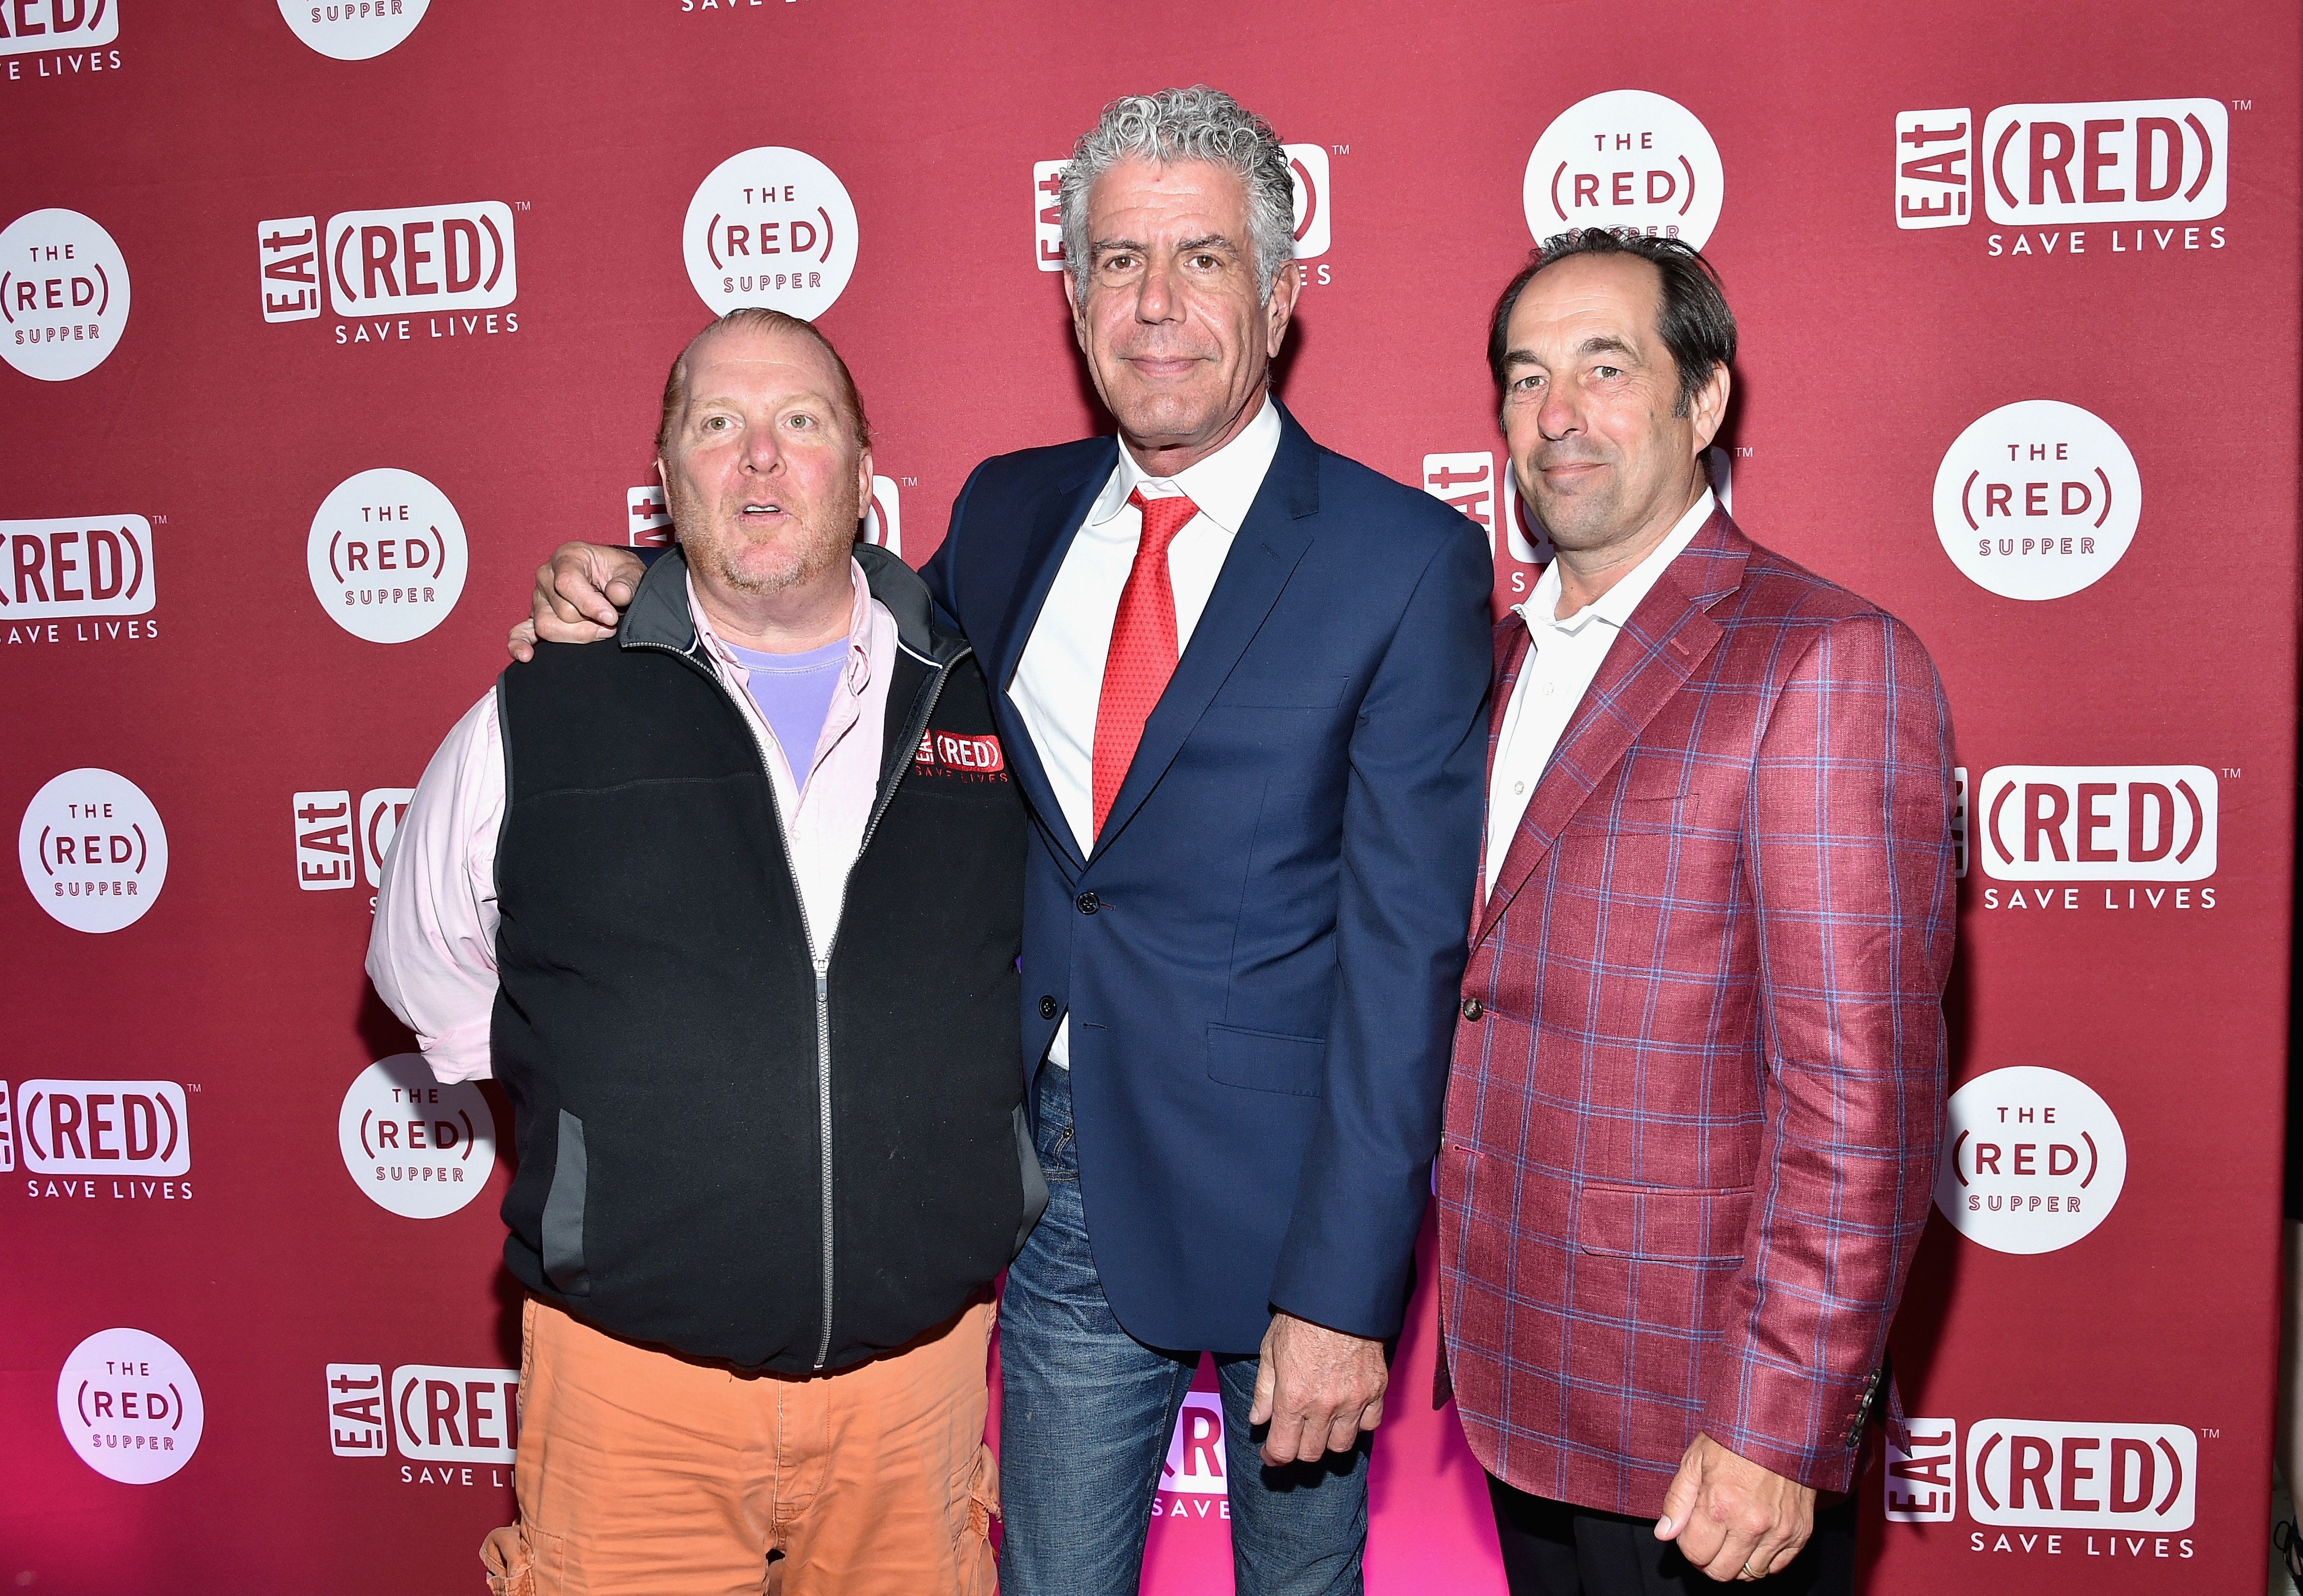 NEW YORK, NY - JUNE 02:  (L-R) Chef Mario Batali, Chef Anthony Bourdain, and Joseph Carr attend The (RED) Supper hosted by Mario Batali with Anthony Bourdain on June 2, 2016 in New York City.  (Photo by Mike Coppola/Getty Images)